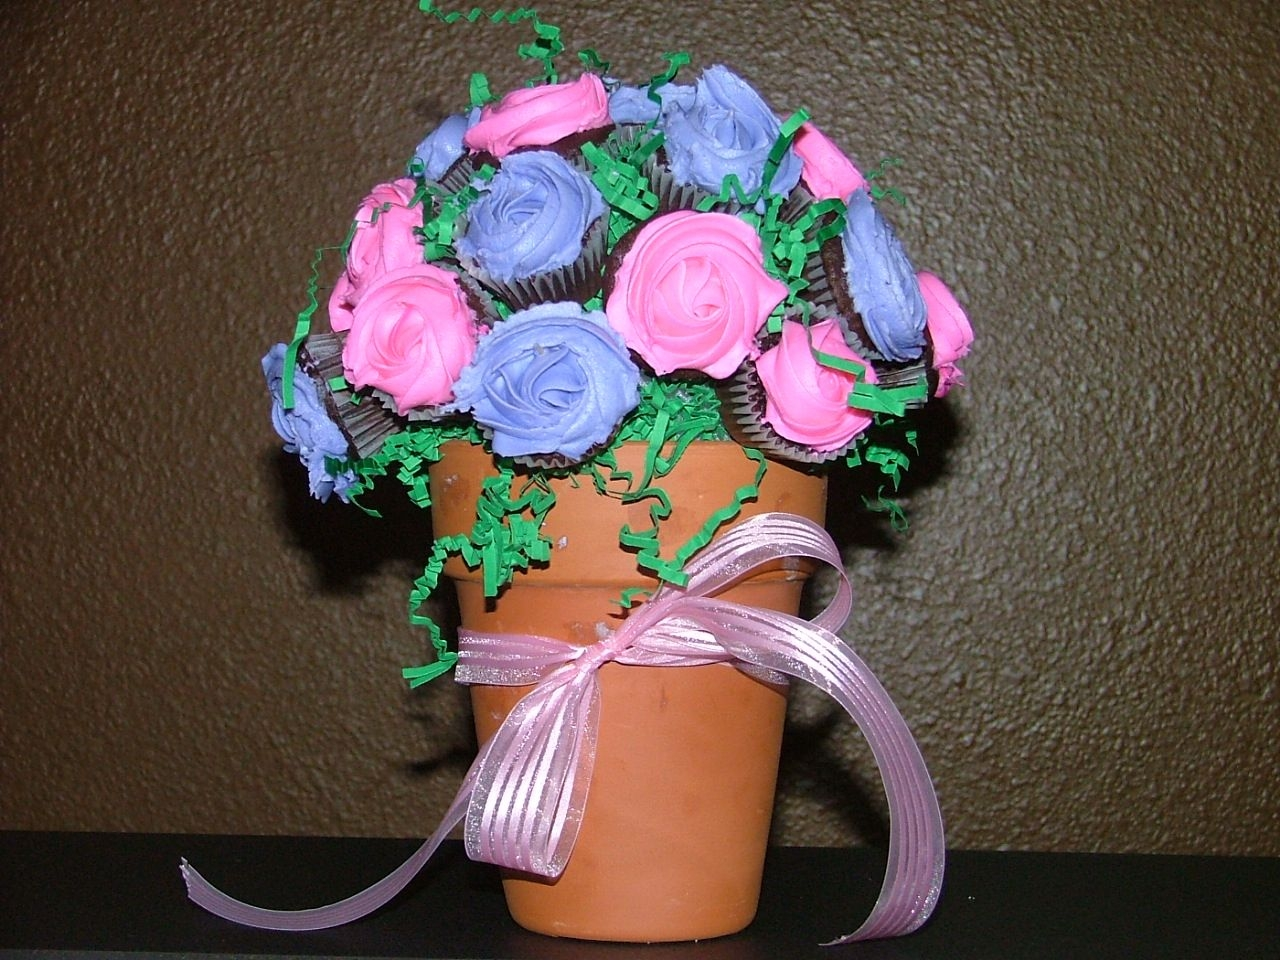 Cupcake Bouquet cupcake bouquet made for first birthday party. Chocolate cupcakes with crusting buttercream frosting. Everyone LOVED these!